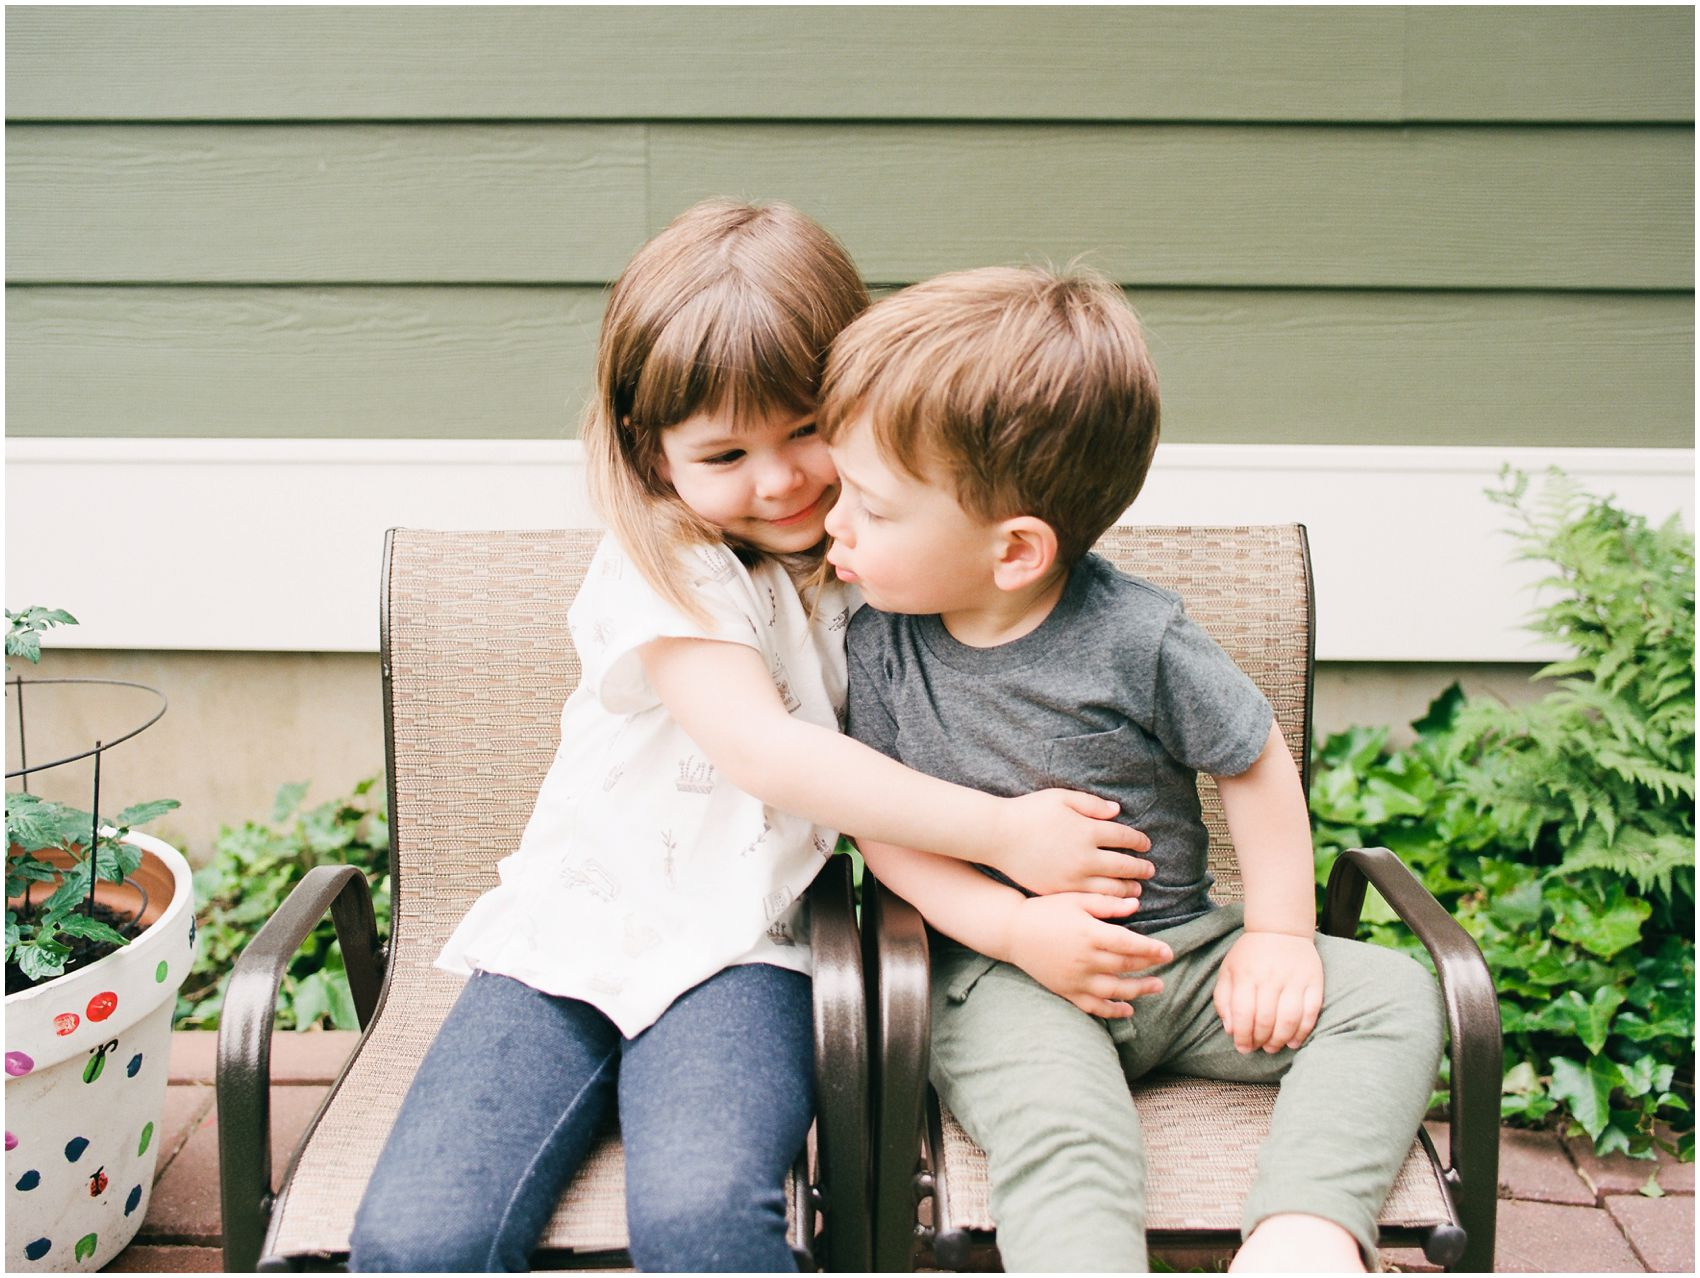 little girl hugging her brother in the backyard garden in NYC home family session